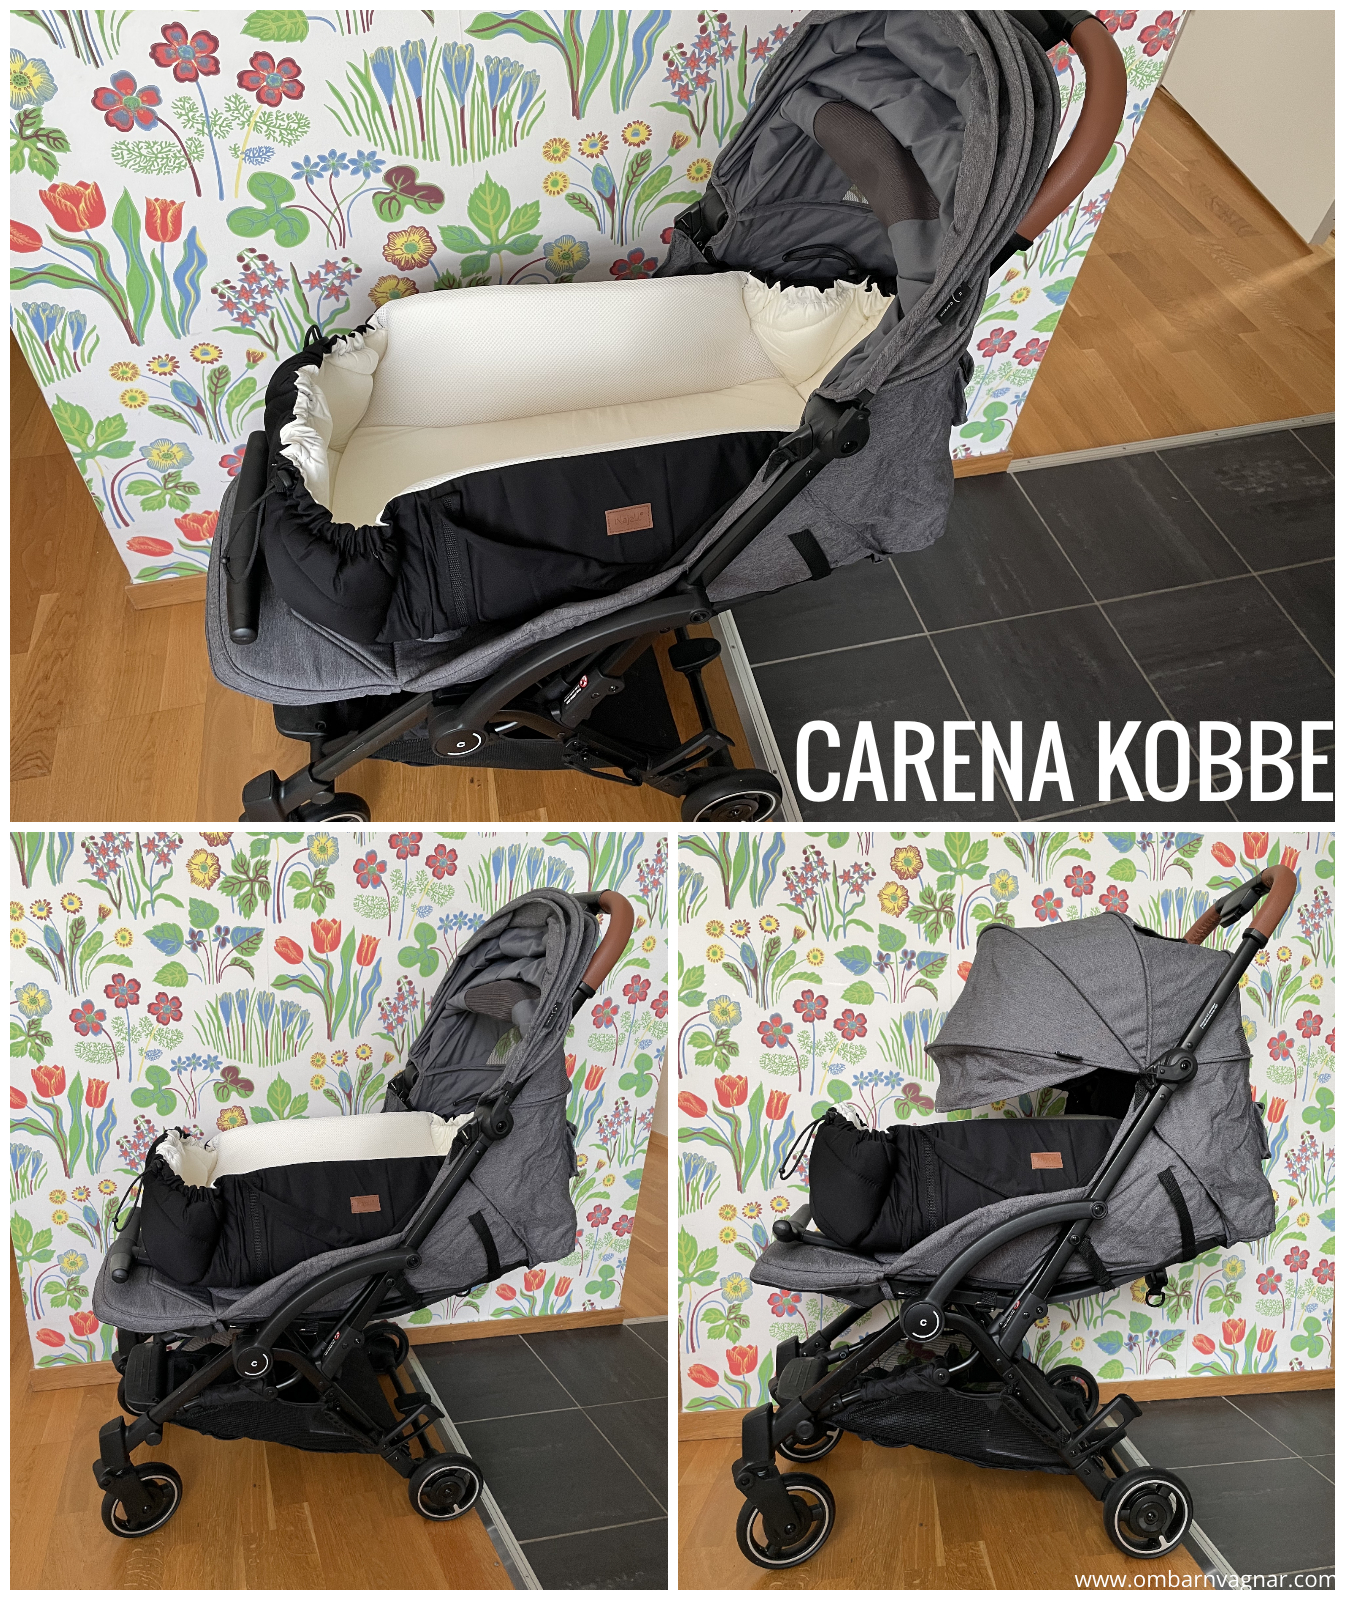 Najell SleepCarrier Mjuklift i Carena Kobbe